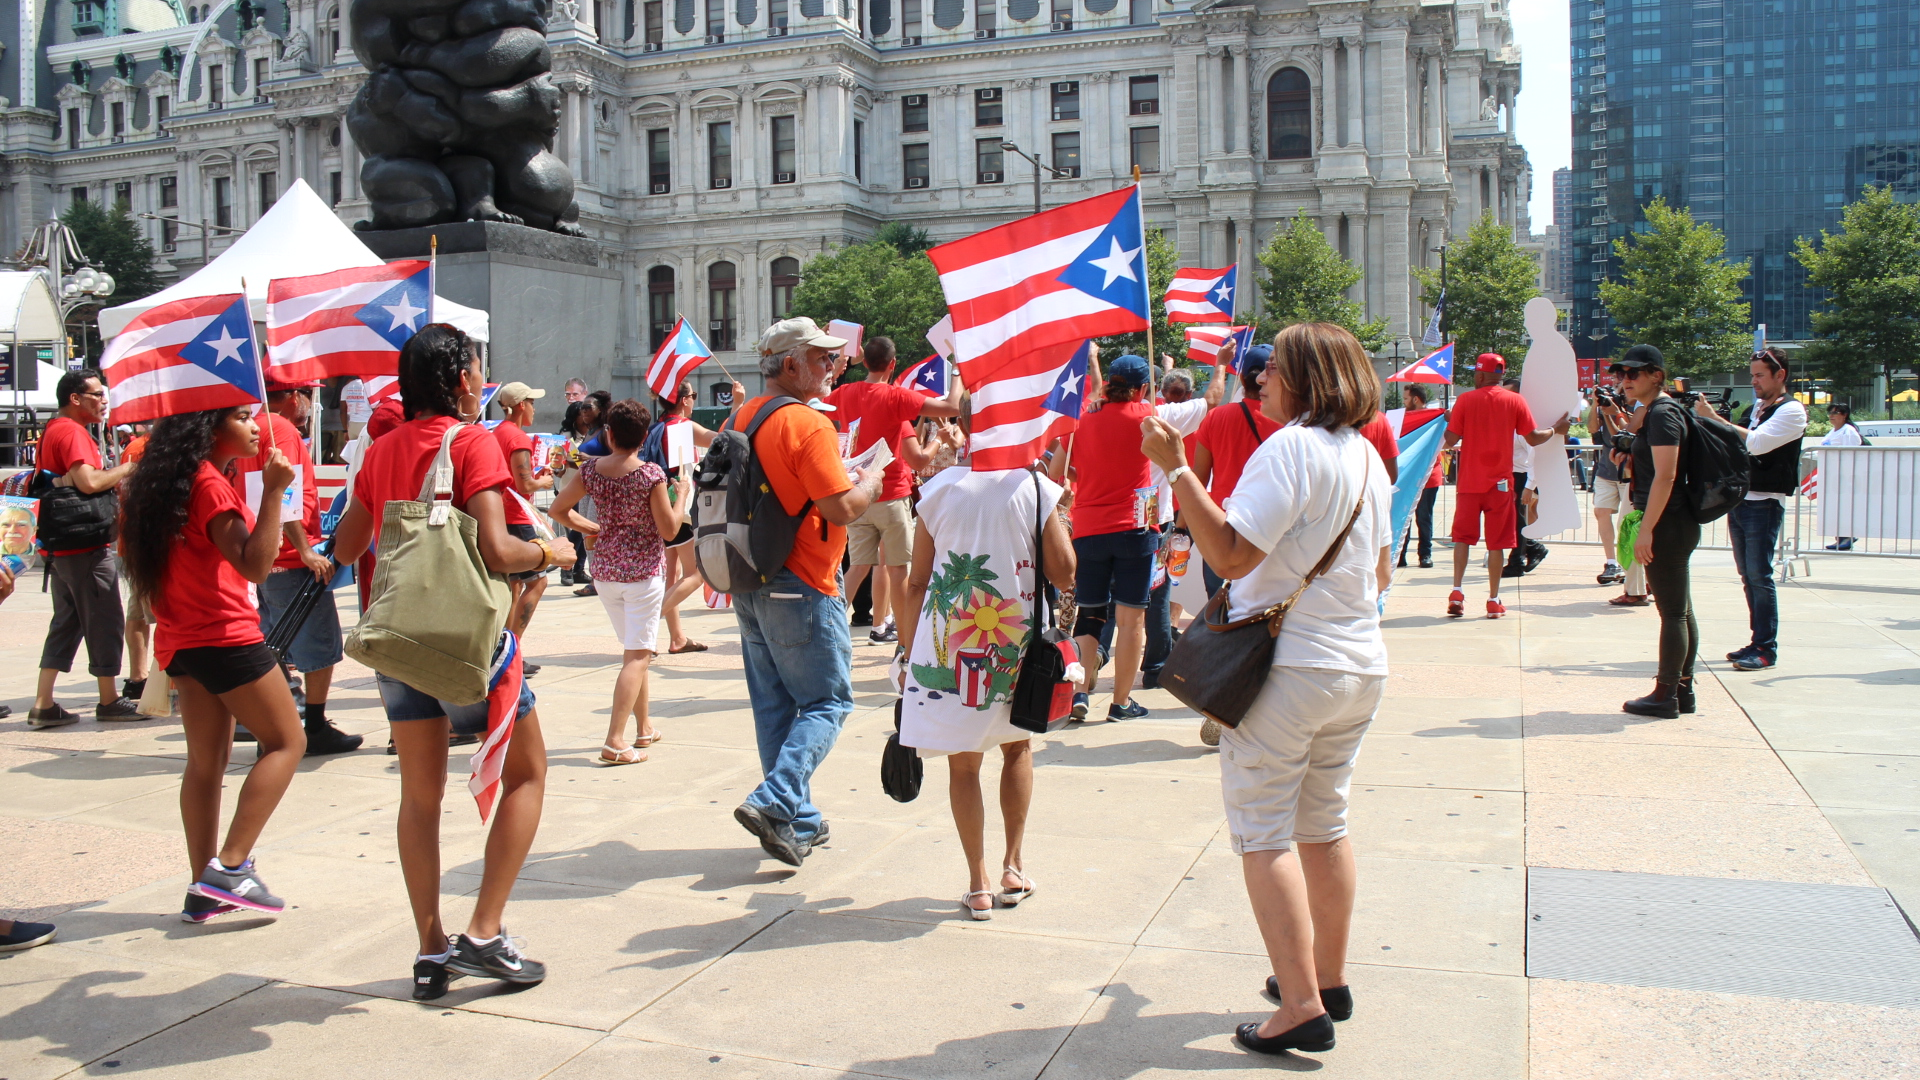 Puerto Ricans from across the country march near Philadelphia's city hall during the Democratic National Convention, July 25, 2016.